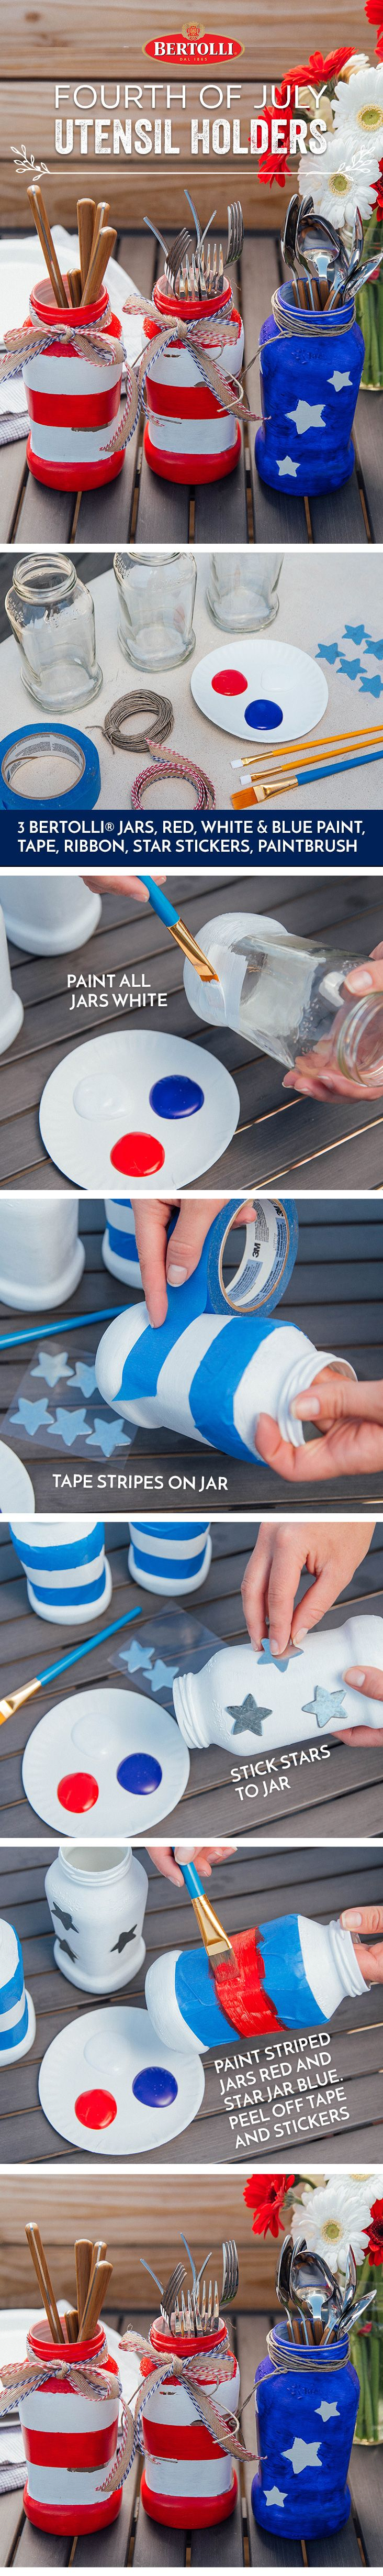 This Independence Day, we are repurposing our Bertolli pasta sauce jars into festive utensil holders. This simple stars-and-stripes DIY project adds a hint of color to your Fourth of July gathering.